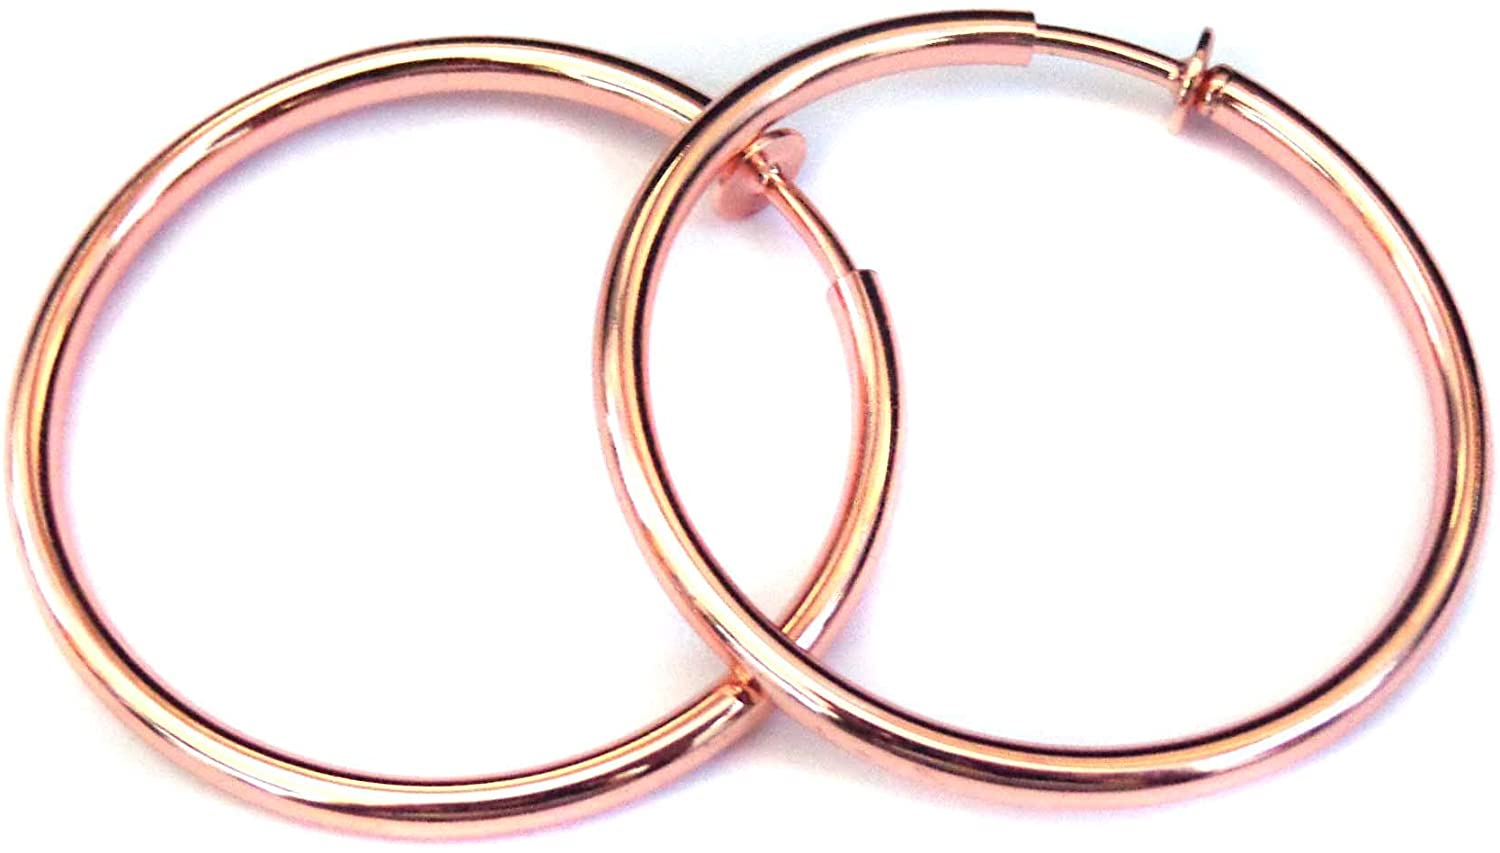 Clip-on Earrings Plated Rose Gold Tone Solid Hoops 2.25 inch Hypo-allergenic